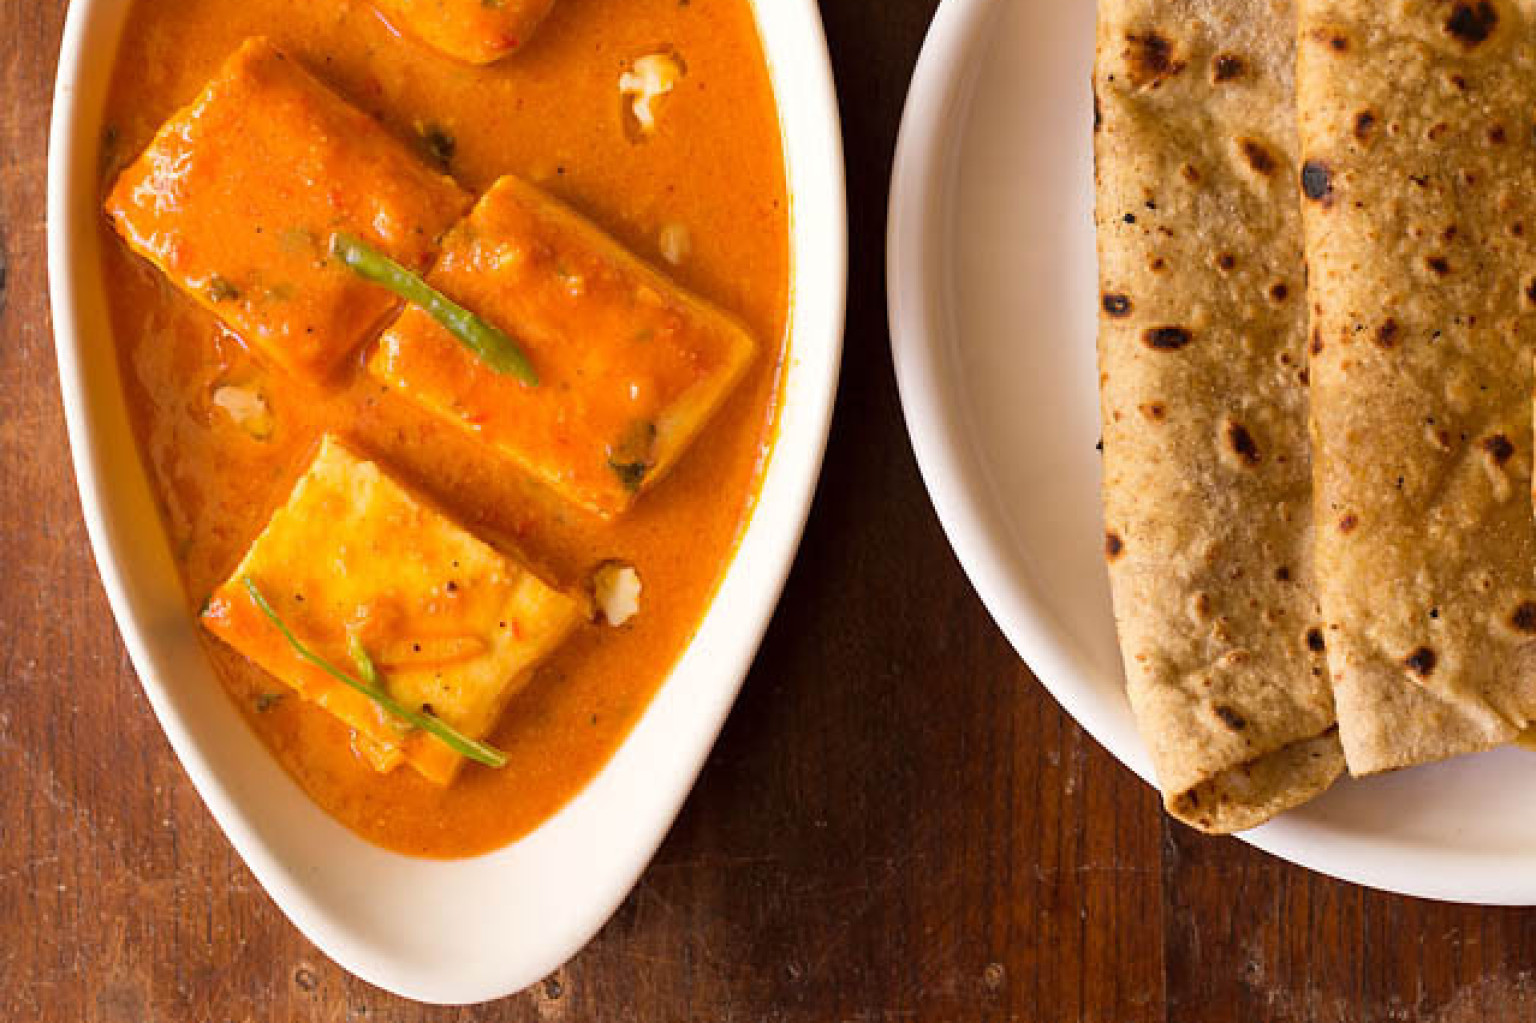 Vegetarian indian recipes from appetizers to desserts and beyond vegetarian indian recipes from appetizers to desserts and beyond photos huffpost forumfinder